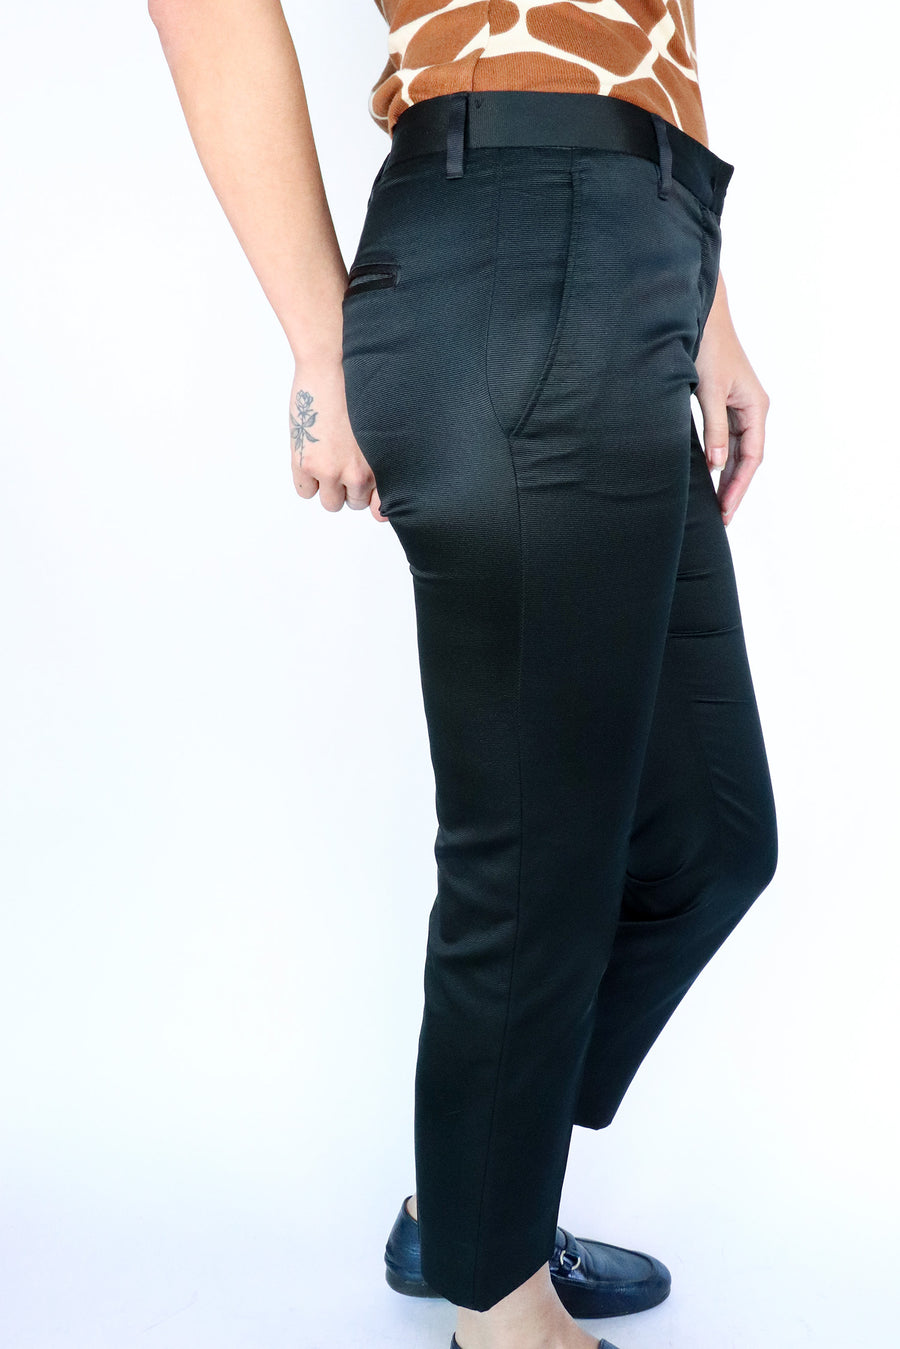 Miu Miu - Silk Dress Pants - 42